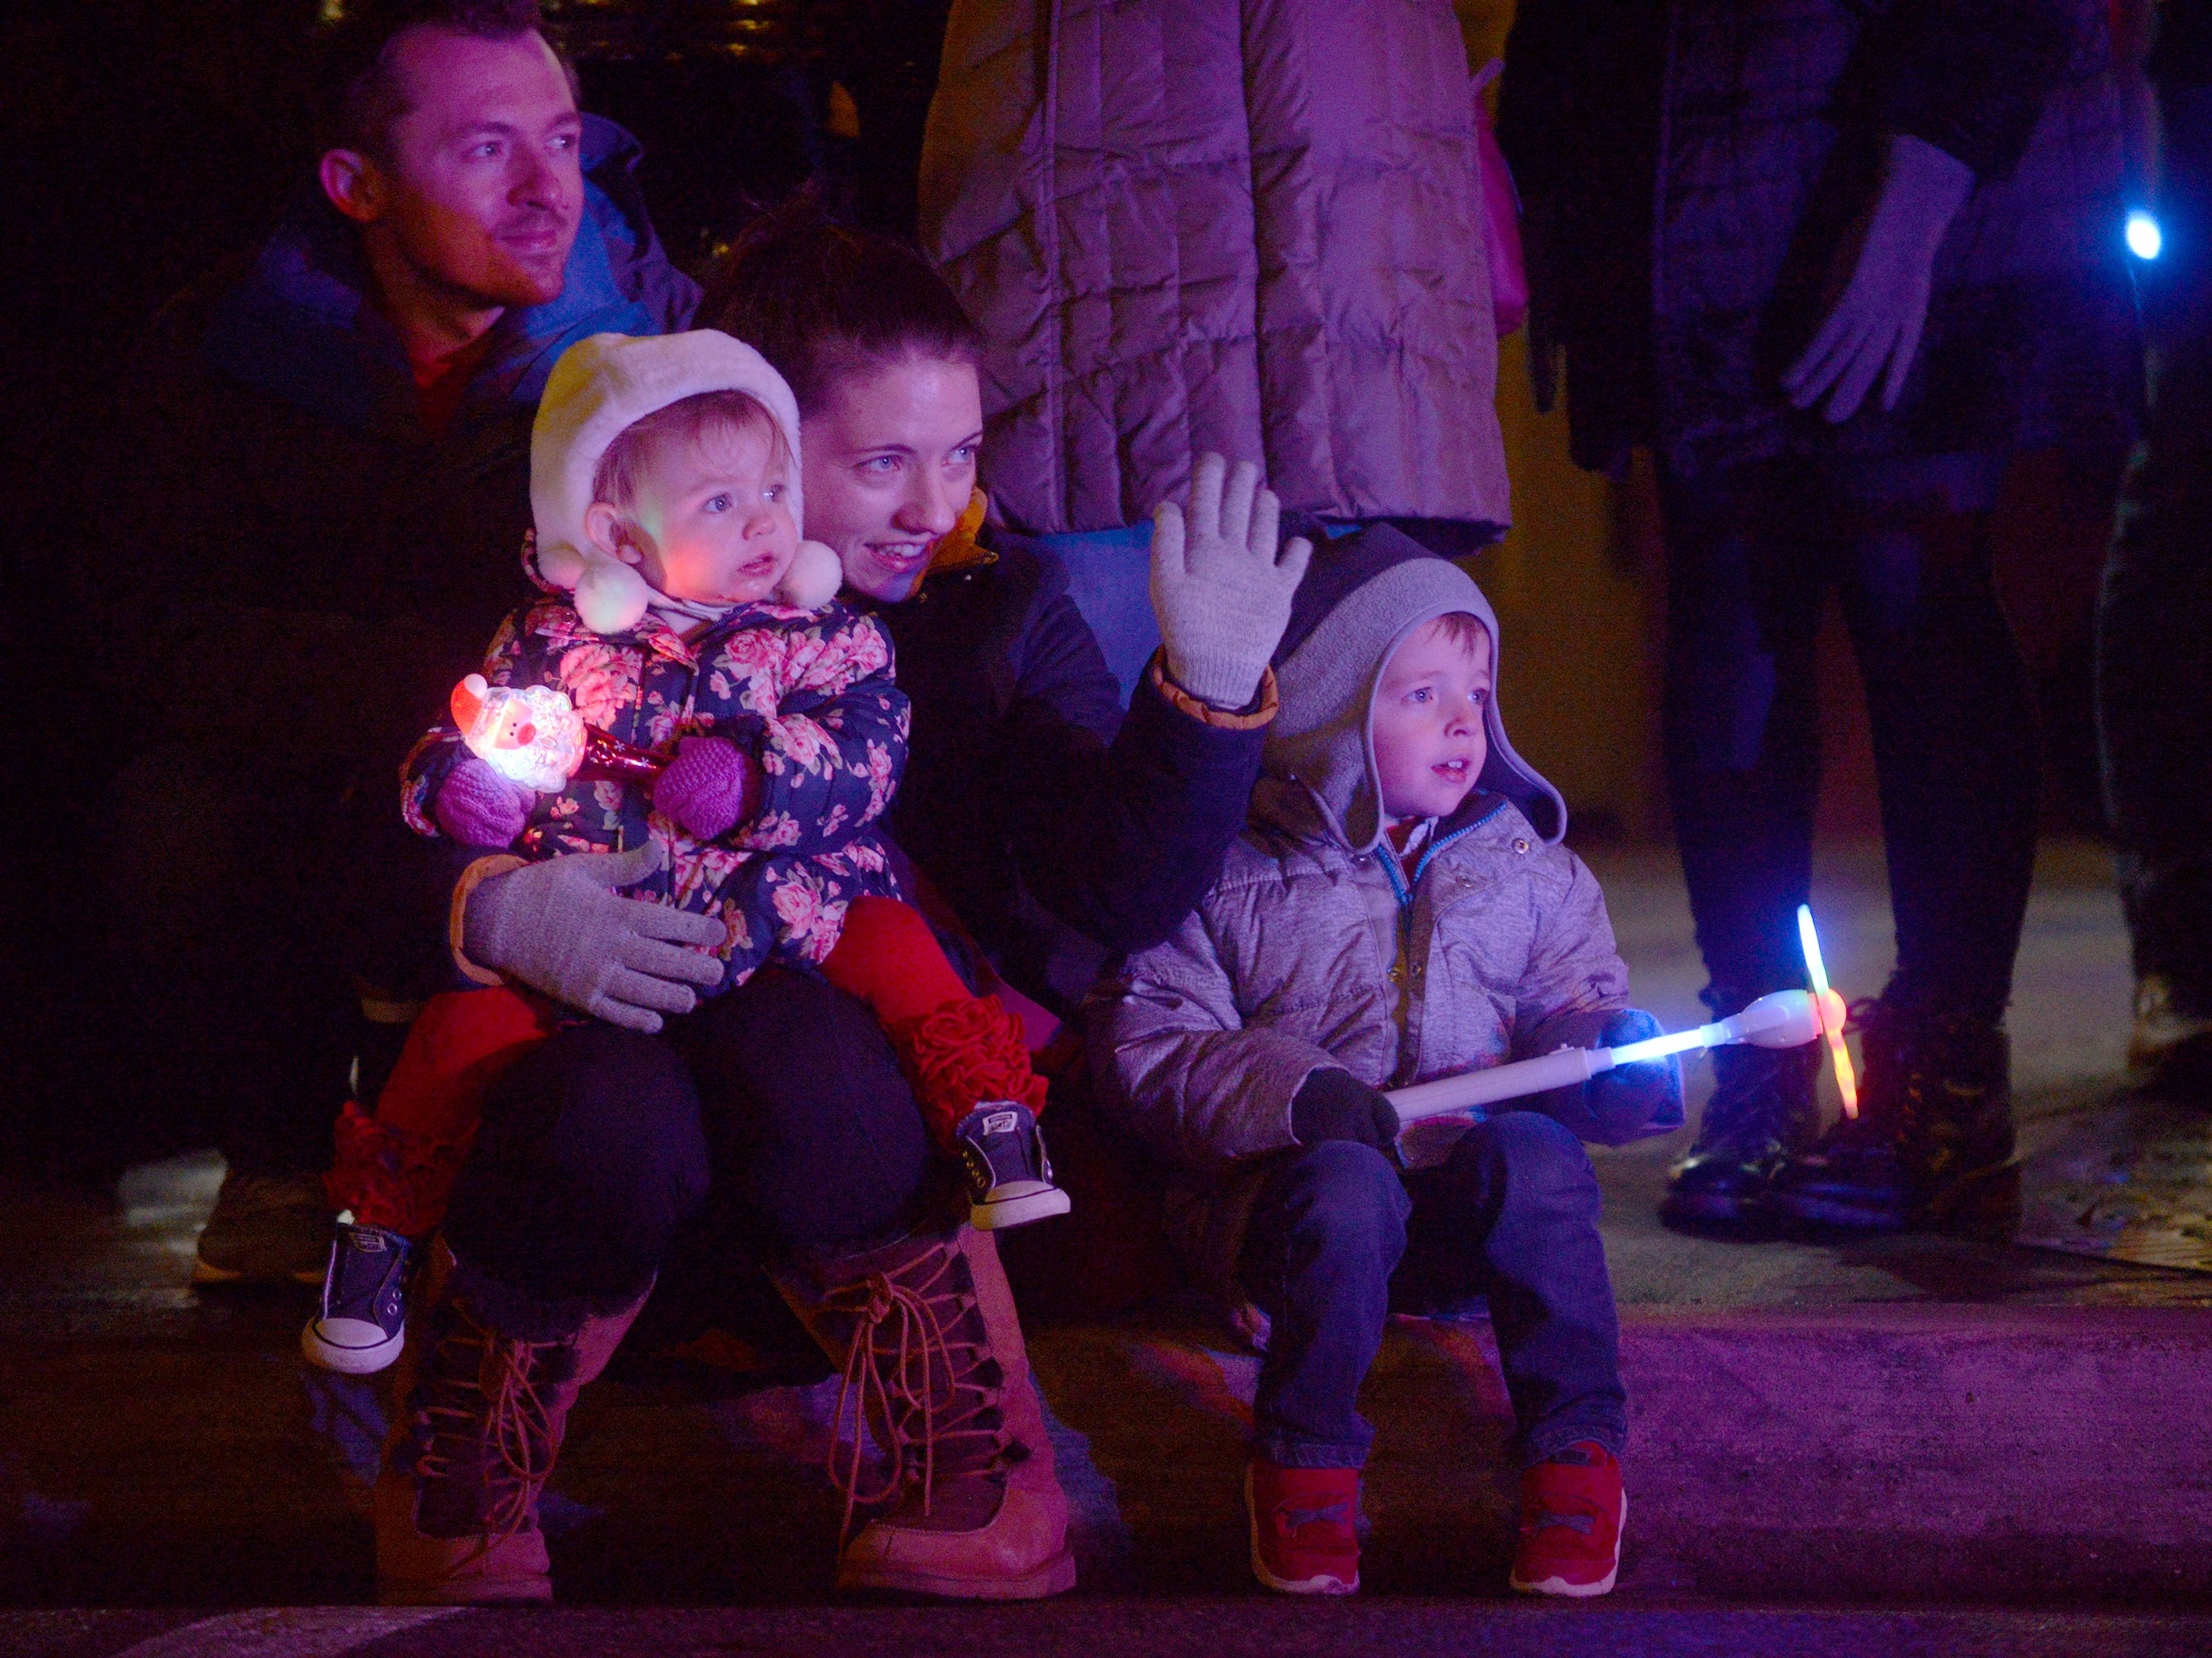 The LaBelle family - Corey (back) Arya, Sara and Asher watch the Holiday Lighted Parade in downtown Northville, Nov. 16, 2018.